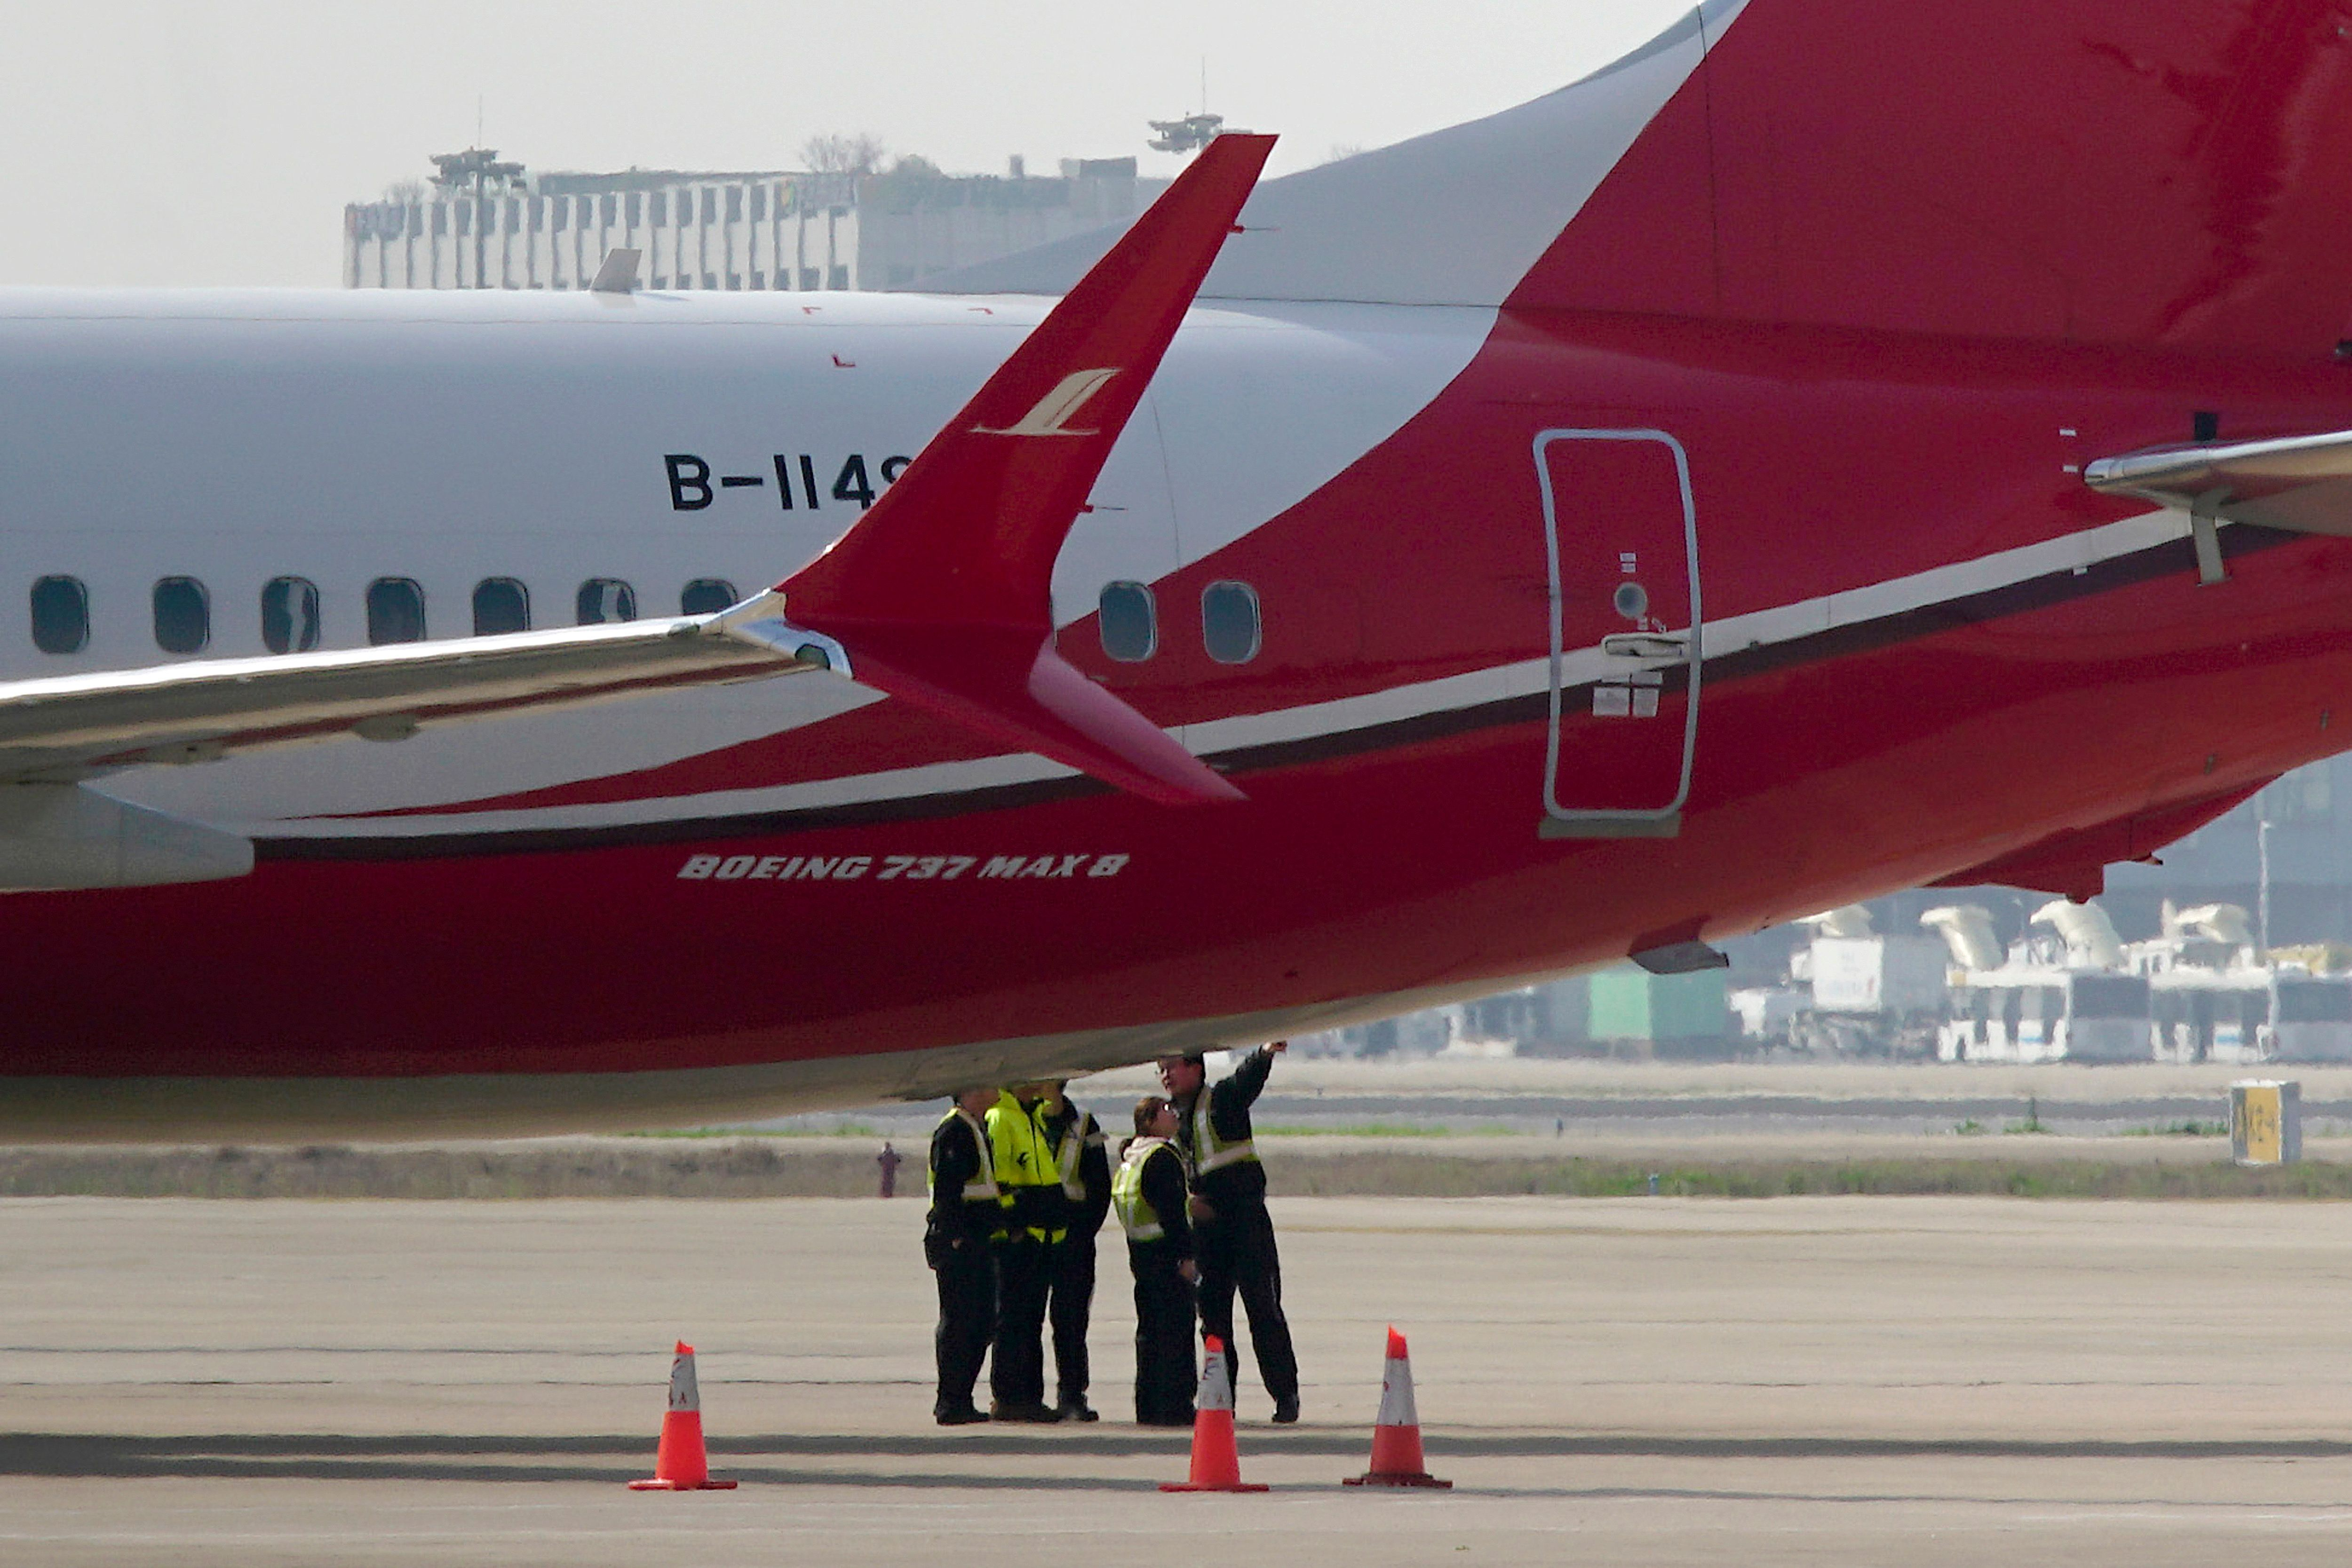 <p> Ground crew chat near a Boeing 737 MAX 8 plane operated by Shanghai Airlines parked on tarmac at Hongqiao airport in Shanghai, China, Tuesday, March 12, 2019. U.S. aviation experts on Tuesday joined the investigation into the crash of an Ethiopian Airlines jetliner that killed 157 people, as a growing number of airlines grounded the new Boeing plane involved in the crash. (AP Photo) </p>